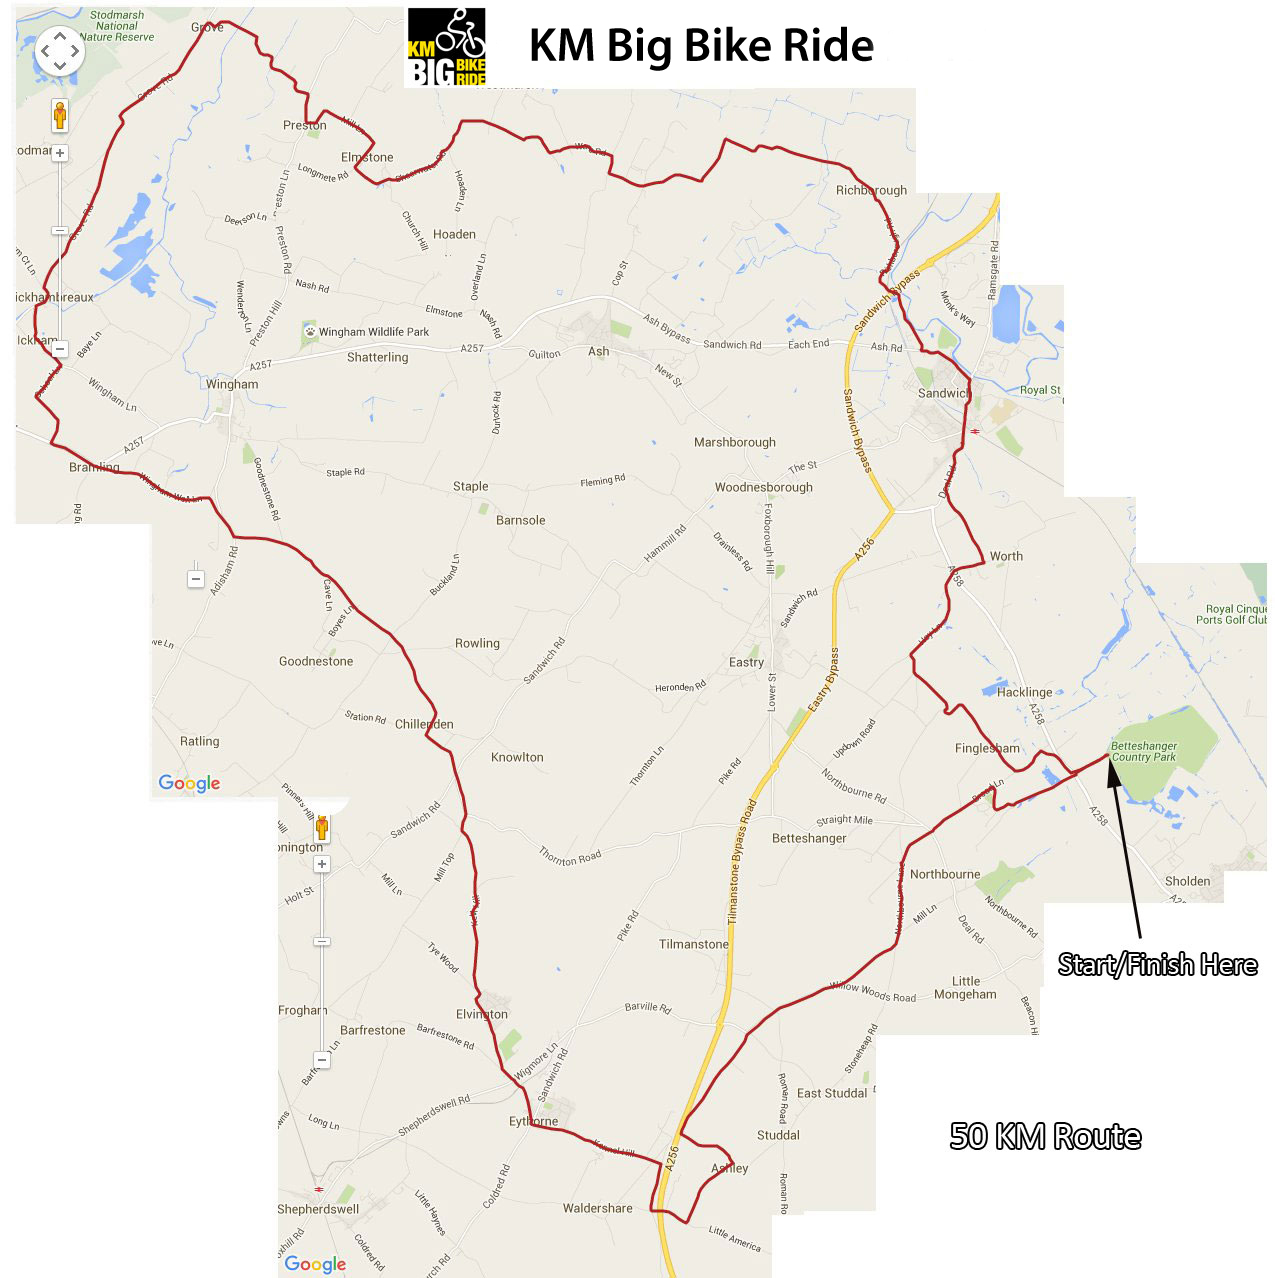 bikeride_50k map route.jpg